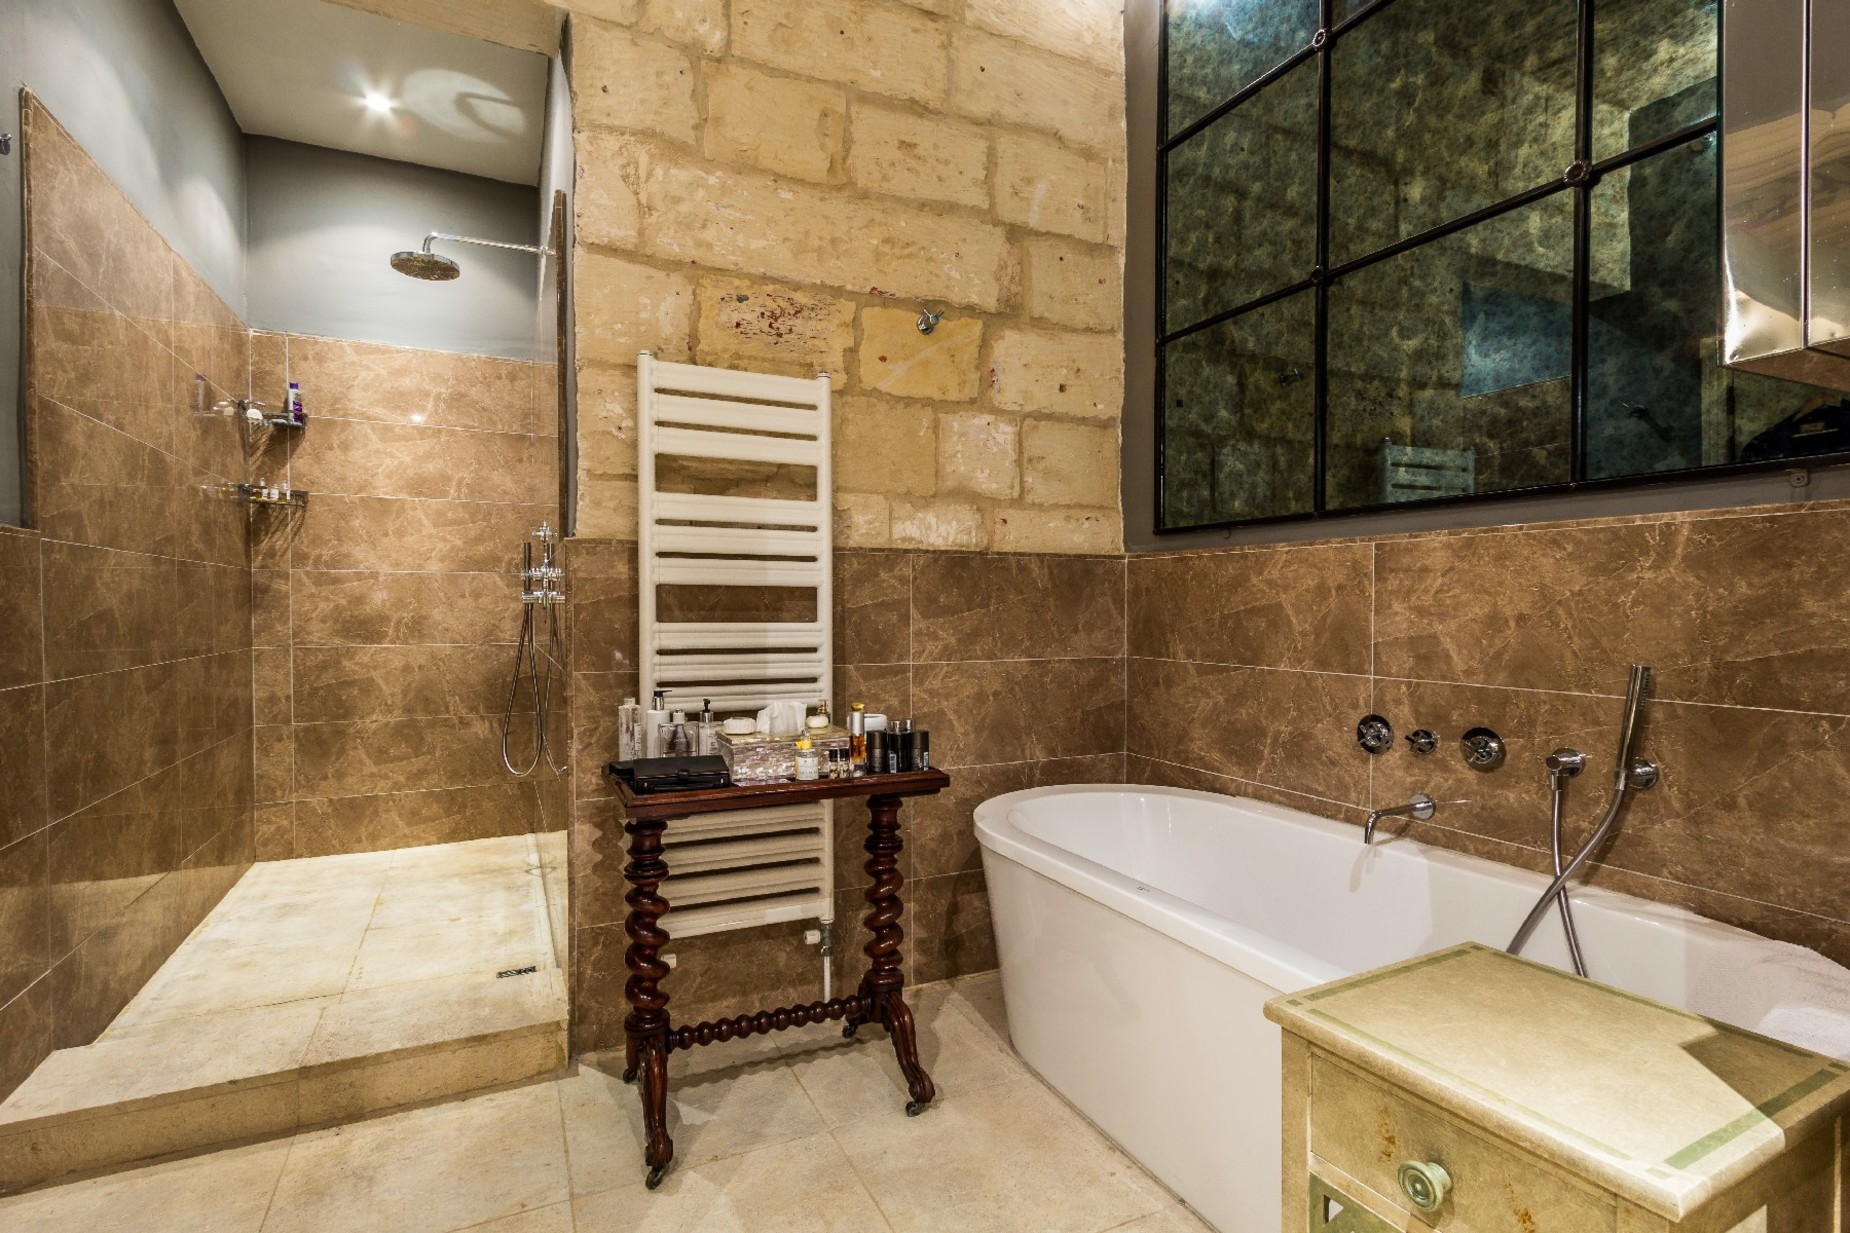 5 bed Town House For Sale in Cospicua, Cospicua - thumb 19